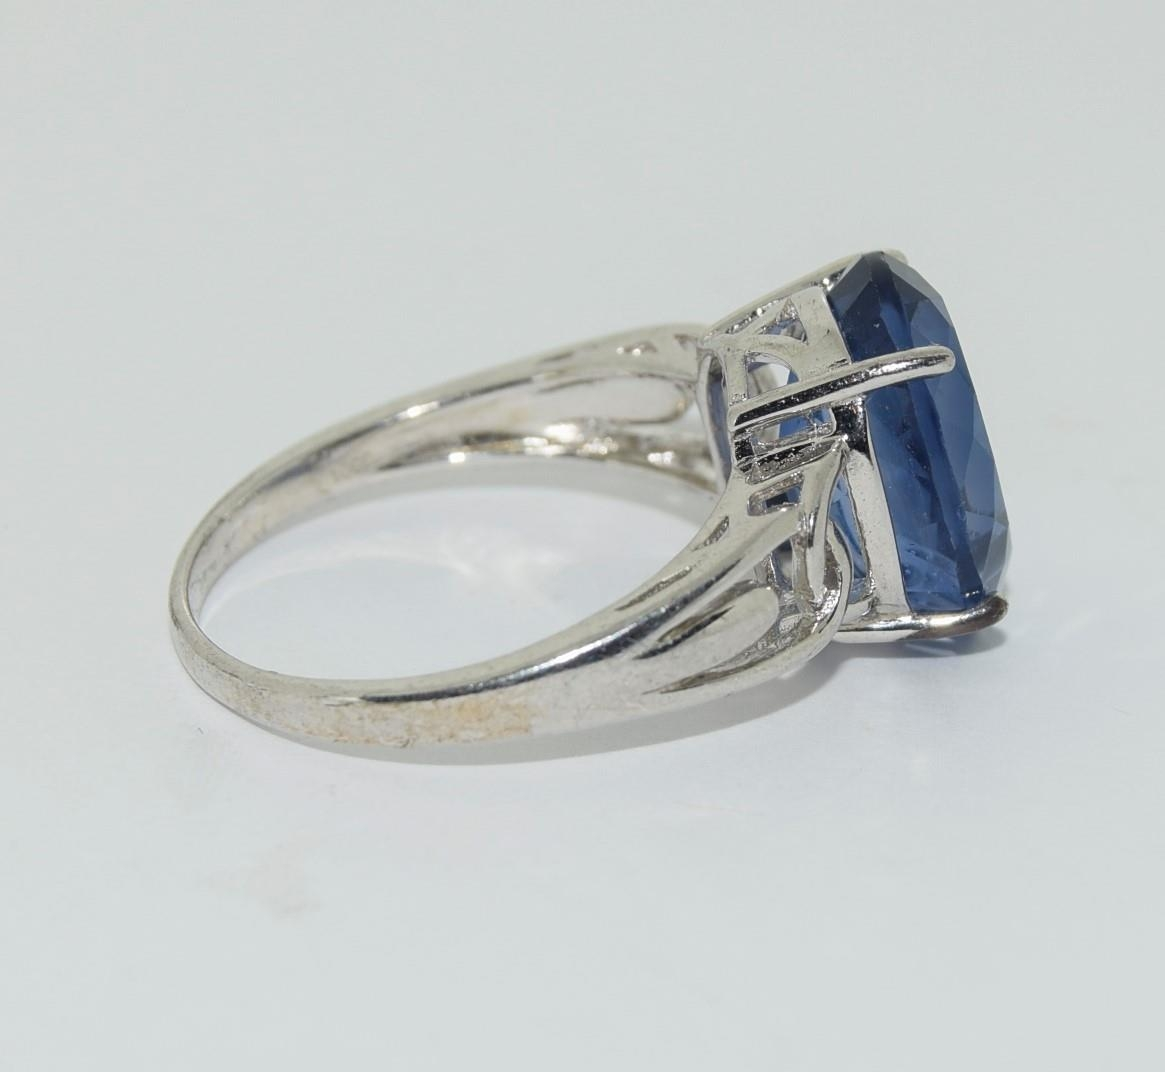 Silver ladies Amethyst ring. Size S. - Image 2 of 3